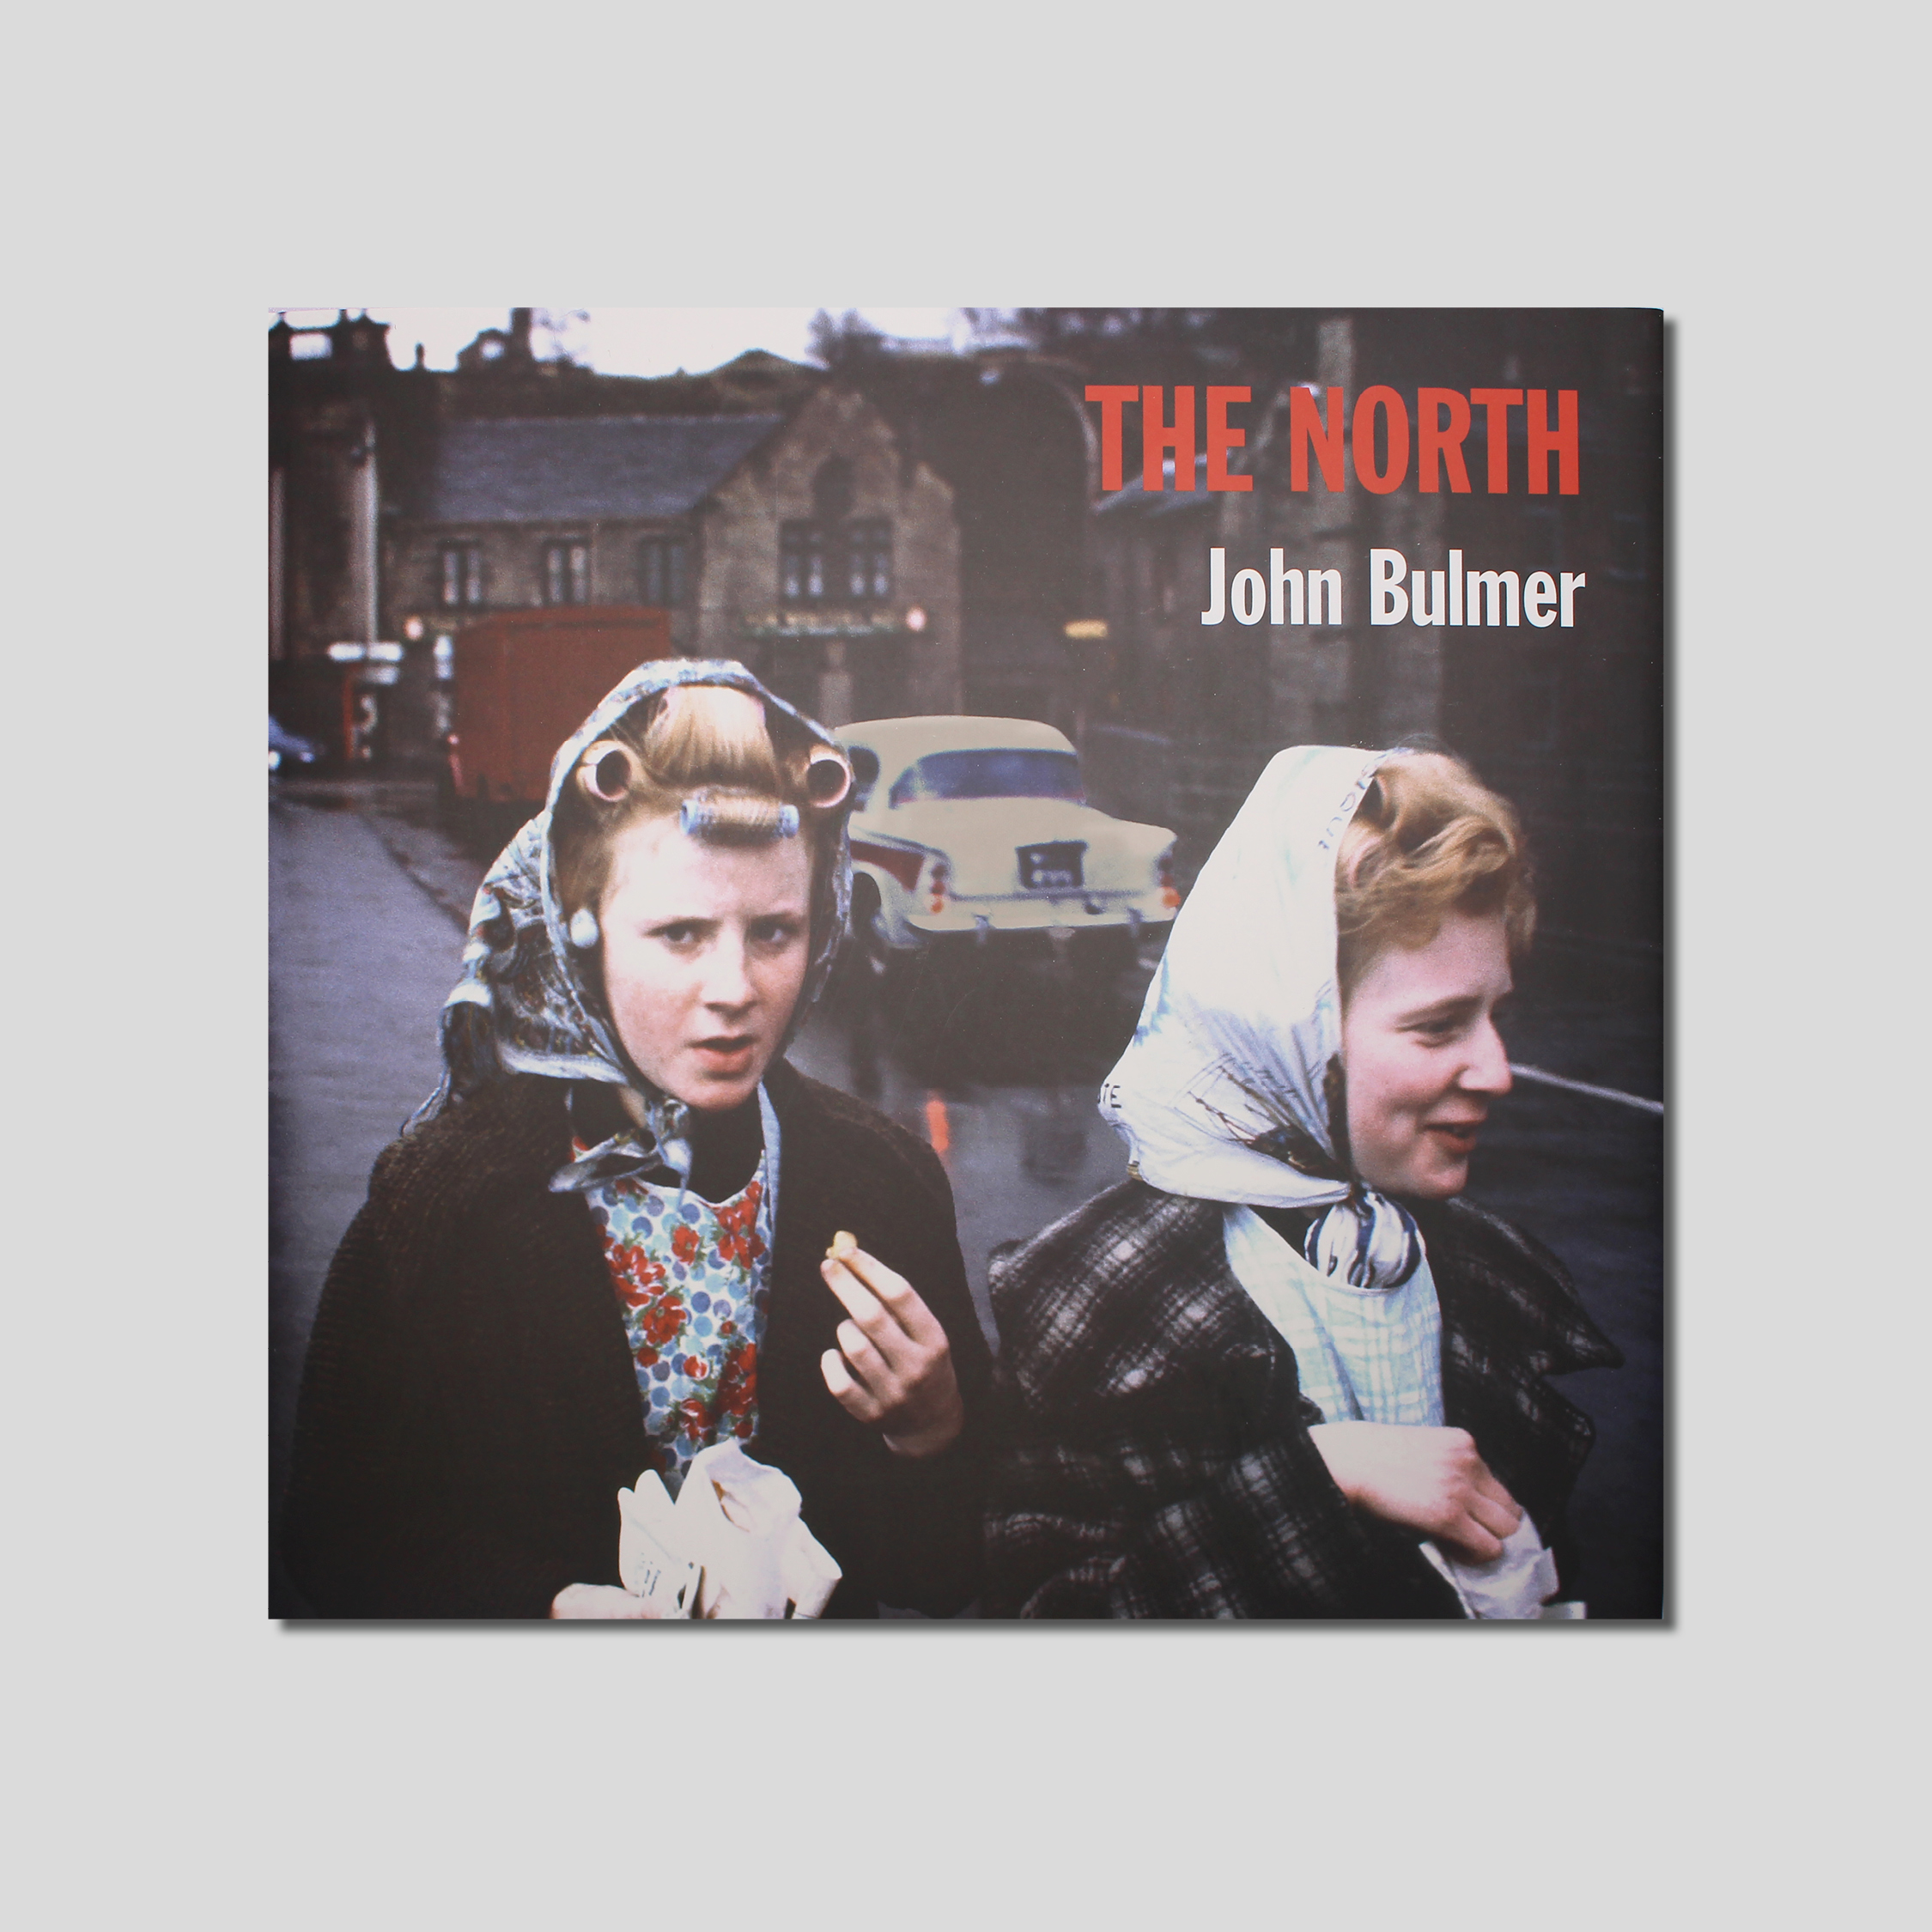 The North by John Bulmer